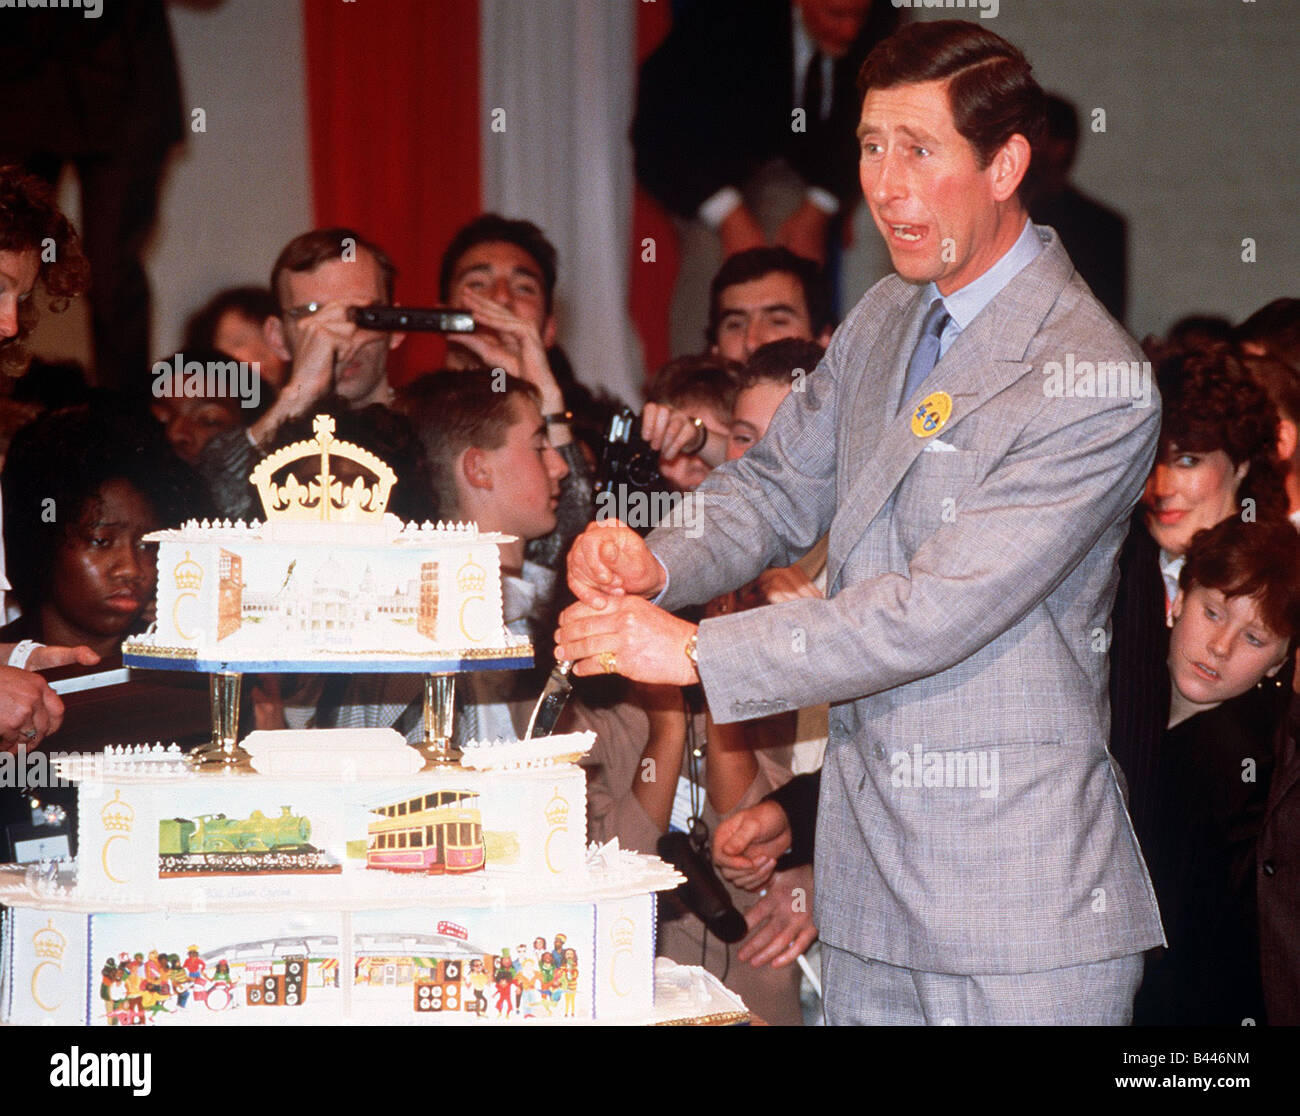 Prince Charles On 40th Birthday High Resolution Stock Photography And Images Alamy